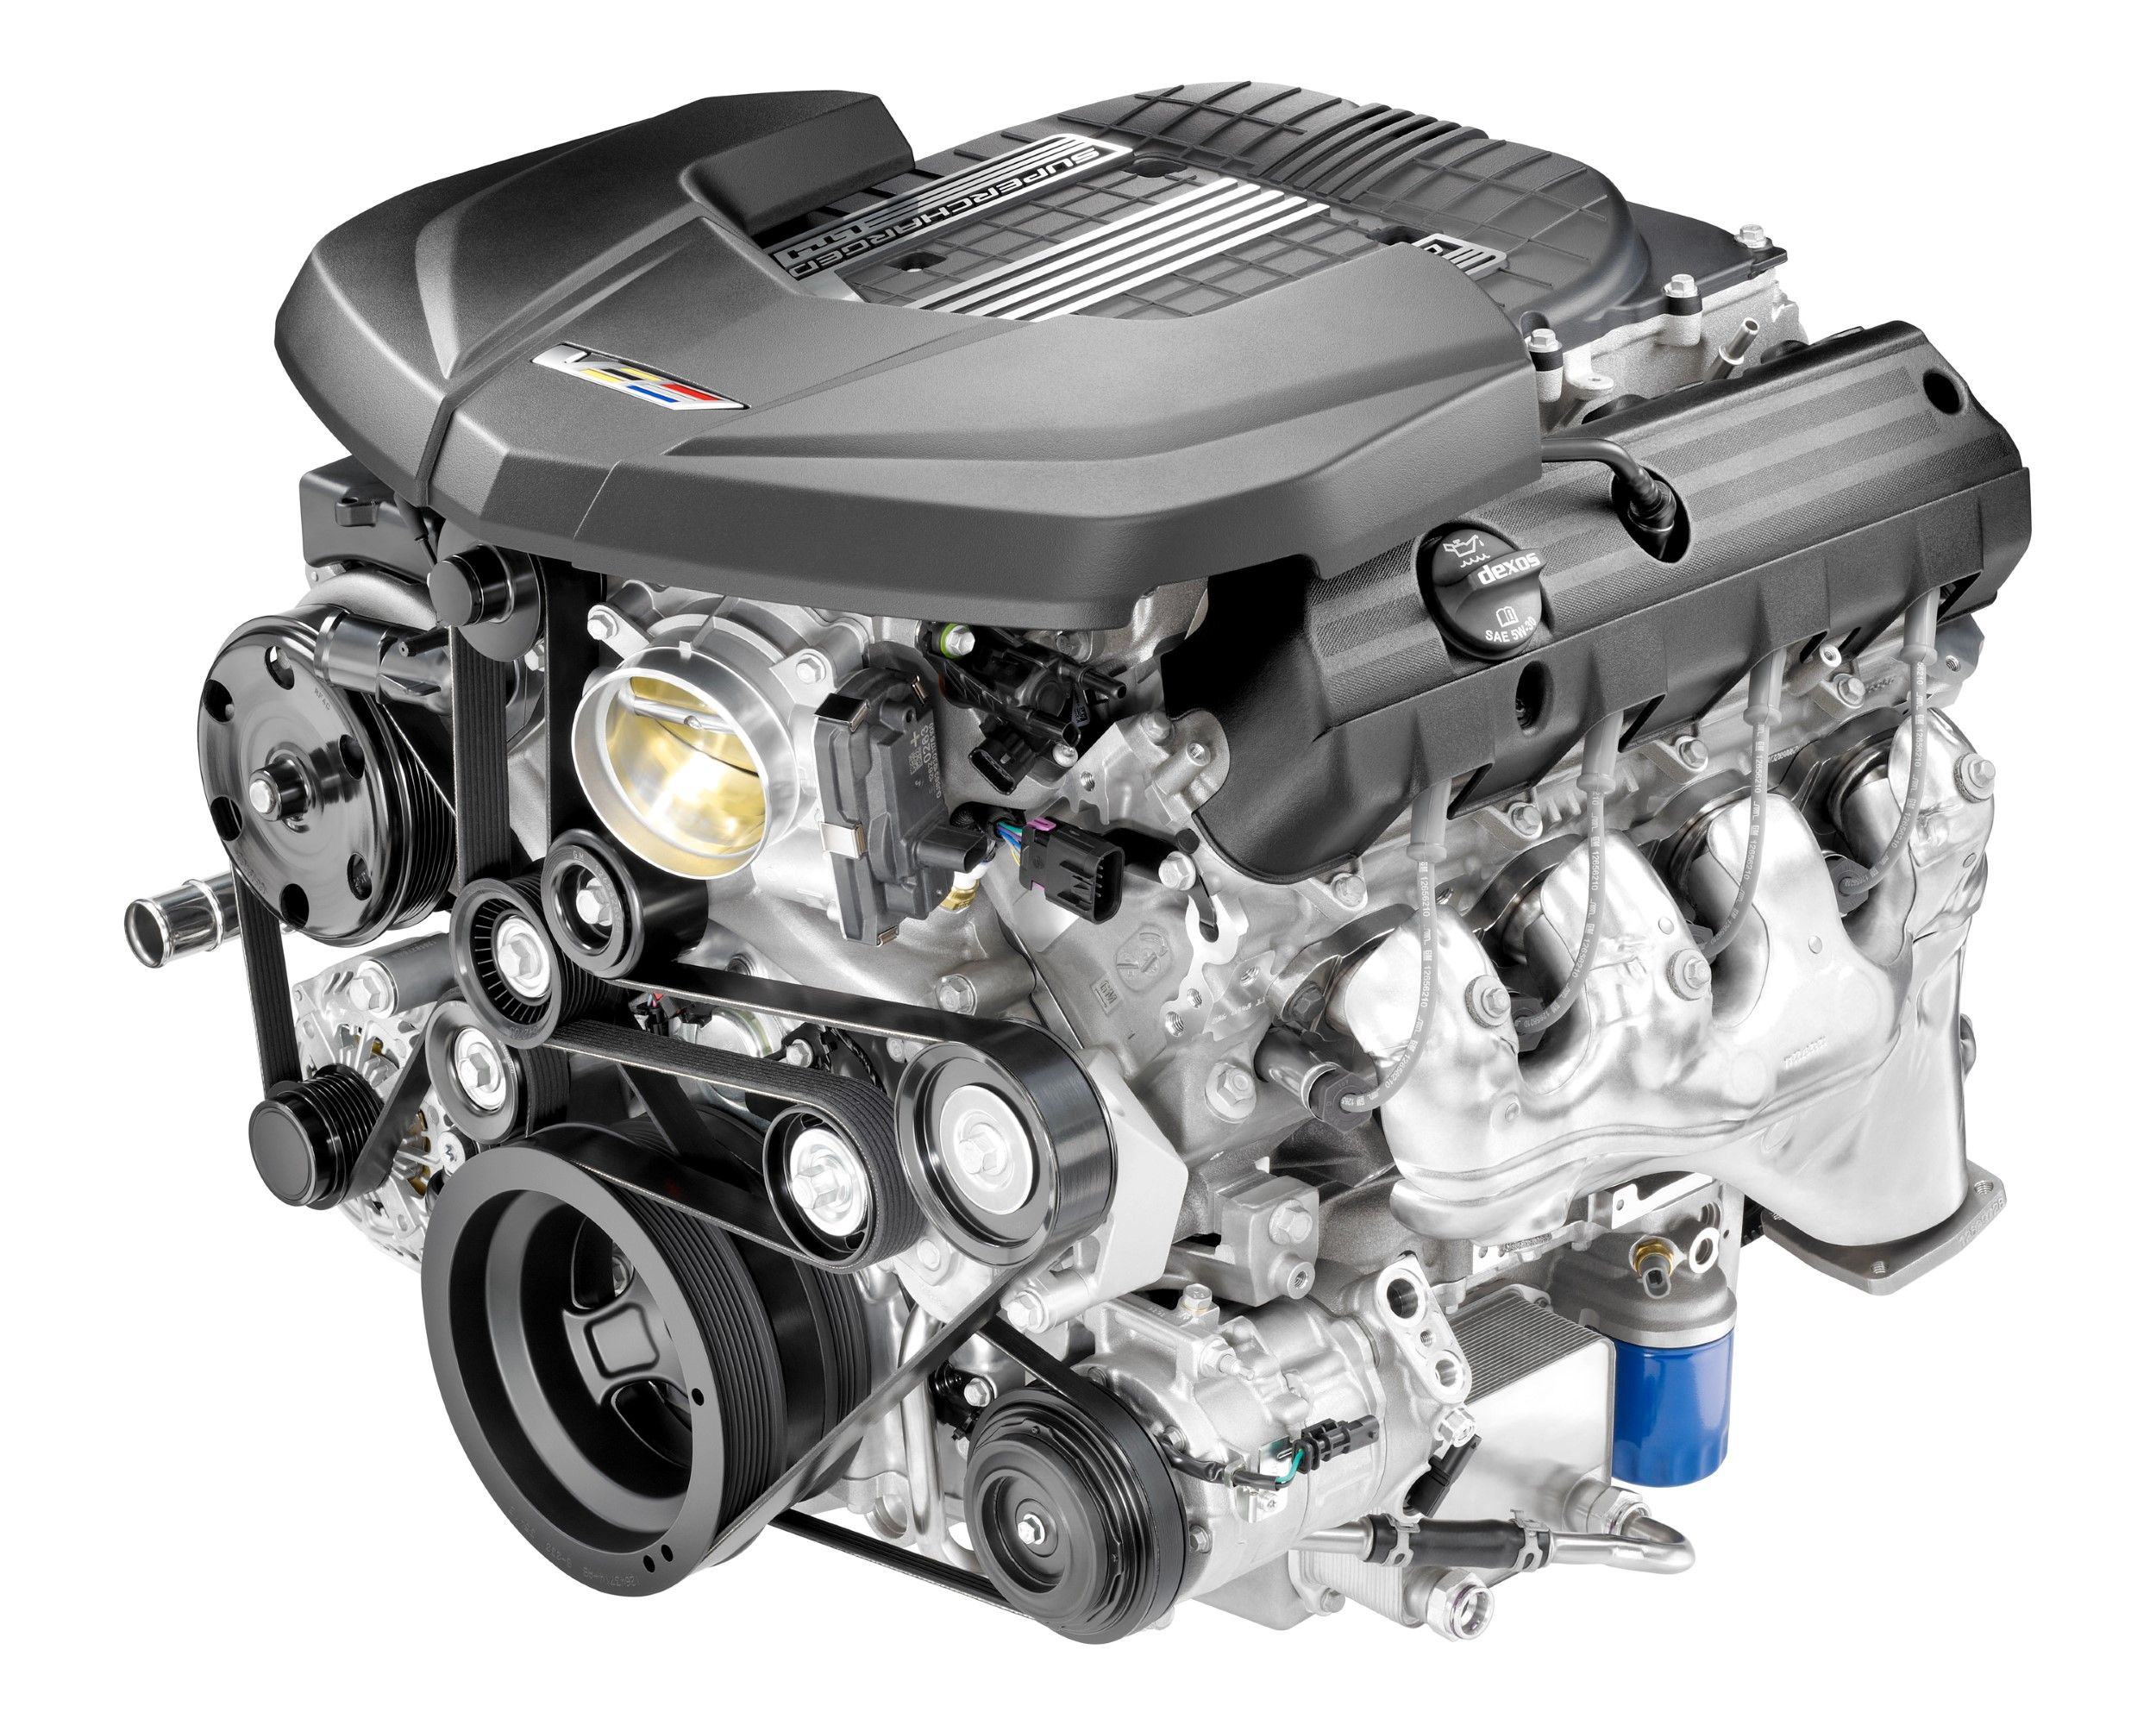 powertrain detail ward us media of named s content en best award dec news cadillac one pages engines lgx